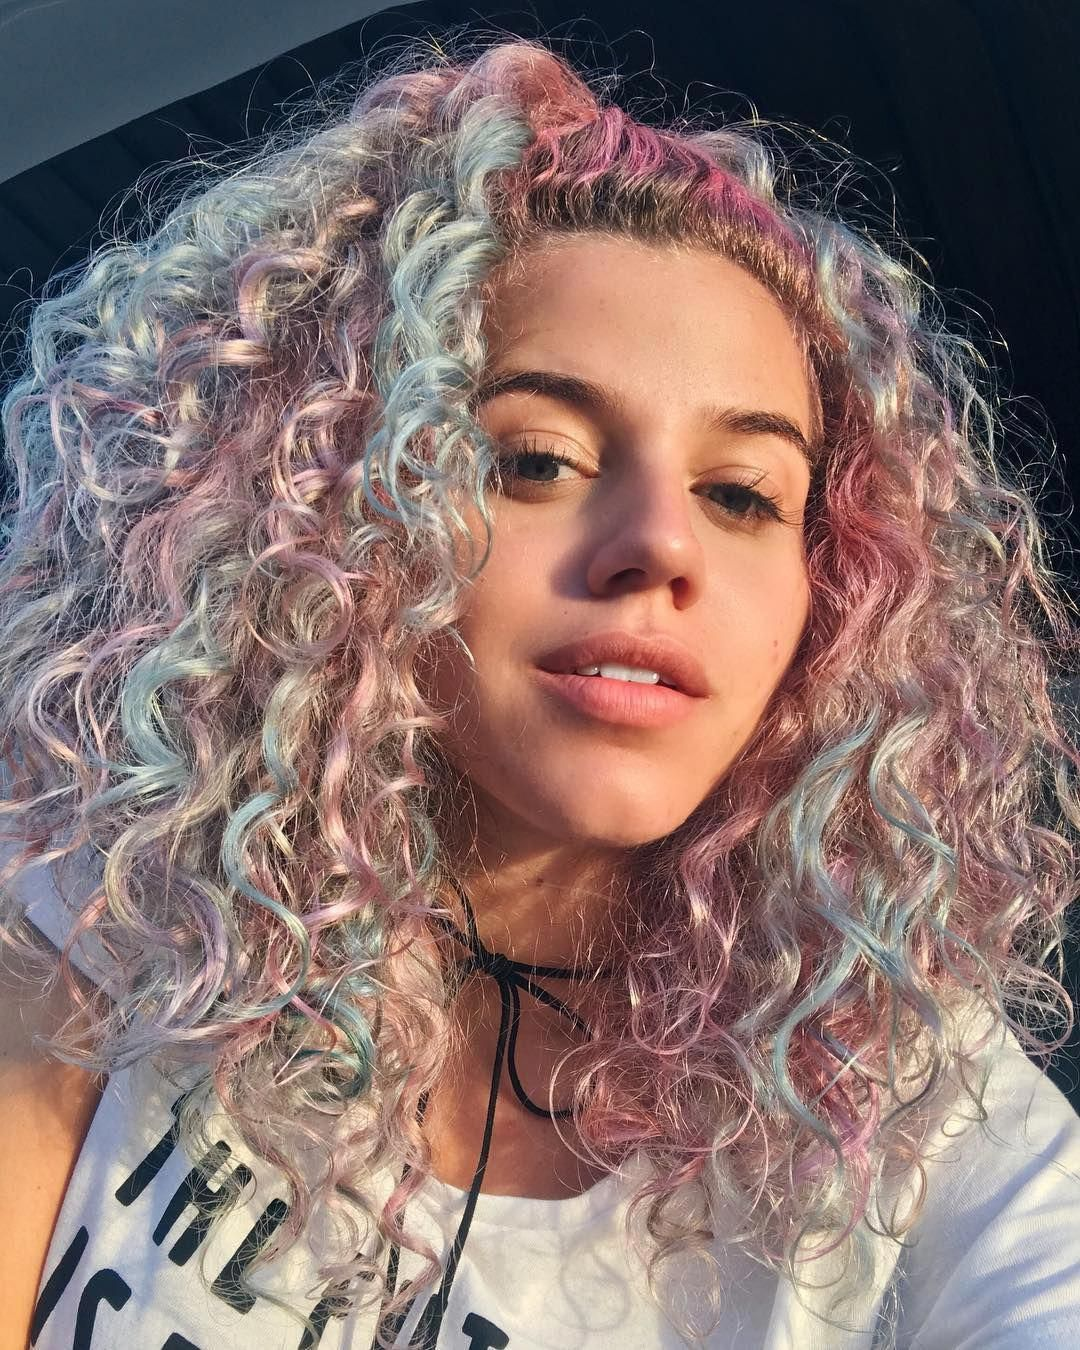 Hairstyle For Curly Hair Female Hairstyles For Long Hair How To Do Your Curly Hair 20190520 Hair Styles Hair Inspo Color Curly Hair Styles